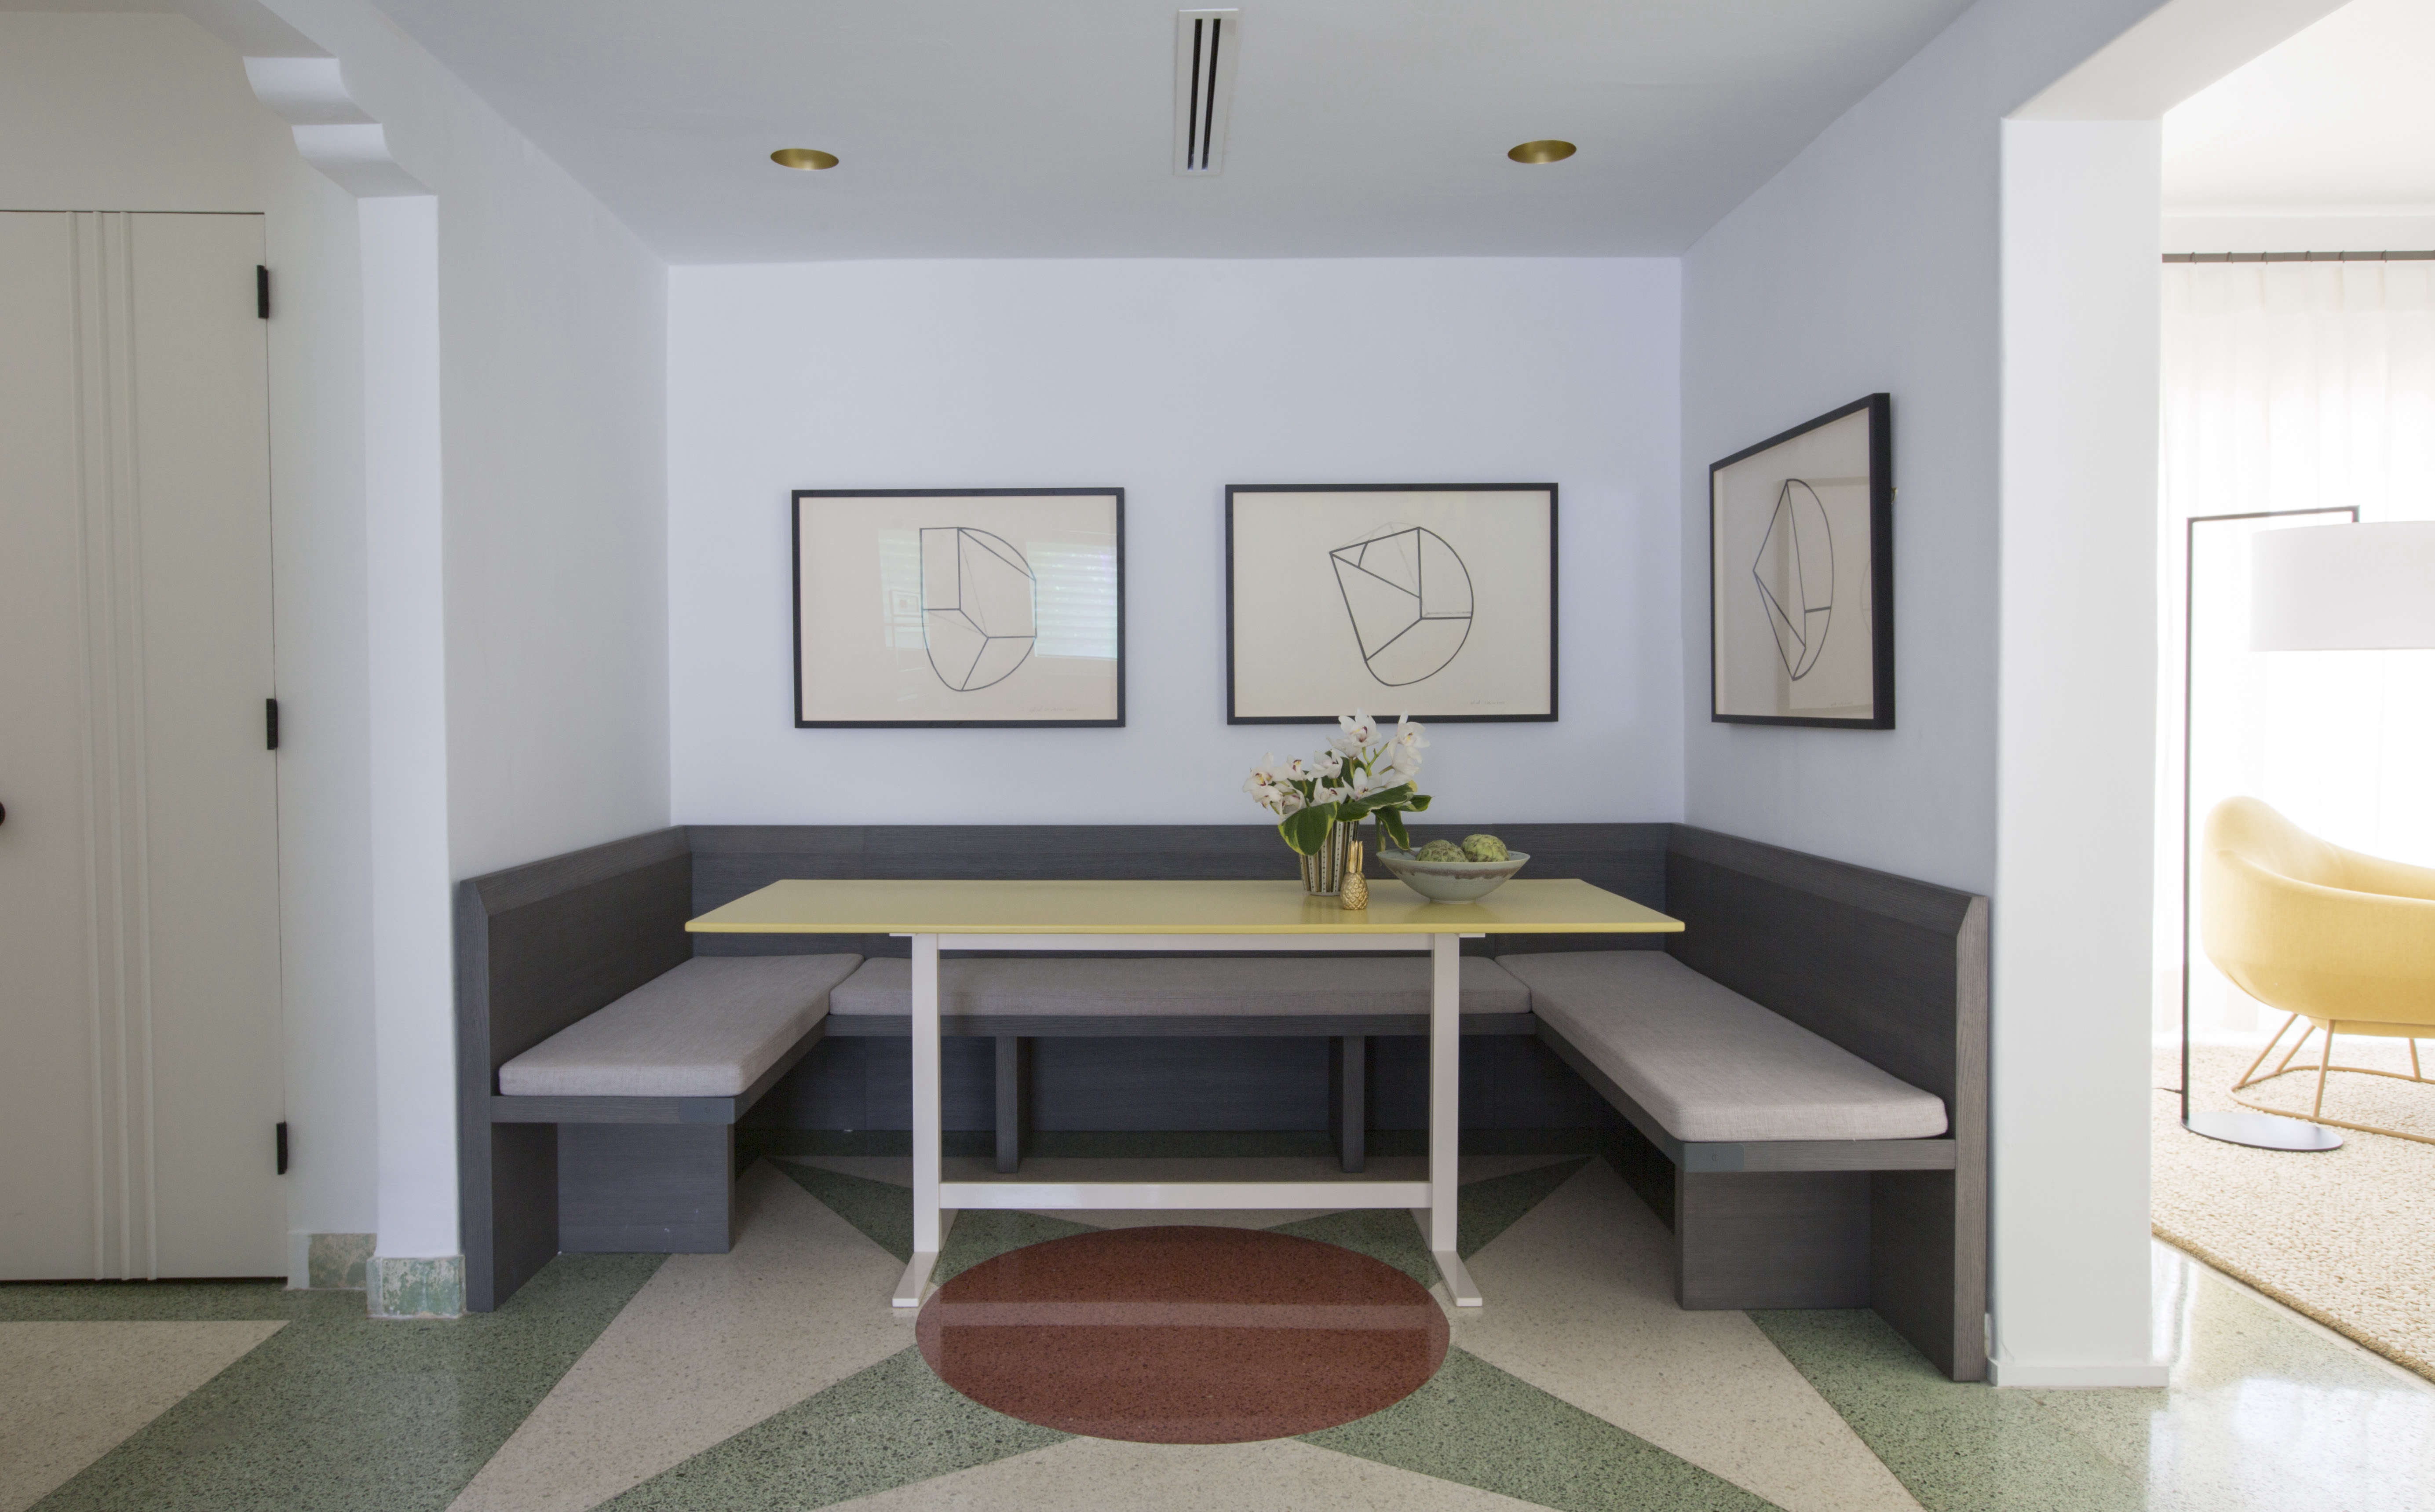 Modern in Miami At Home with a Worldly Contemporary Furniture Dealer Breakfast nook in Miami art deco villa remodel by Stephan Weishaupt, owner of Avenue Road, Max Zambelli photo | Remodelista